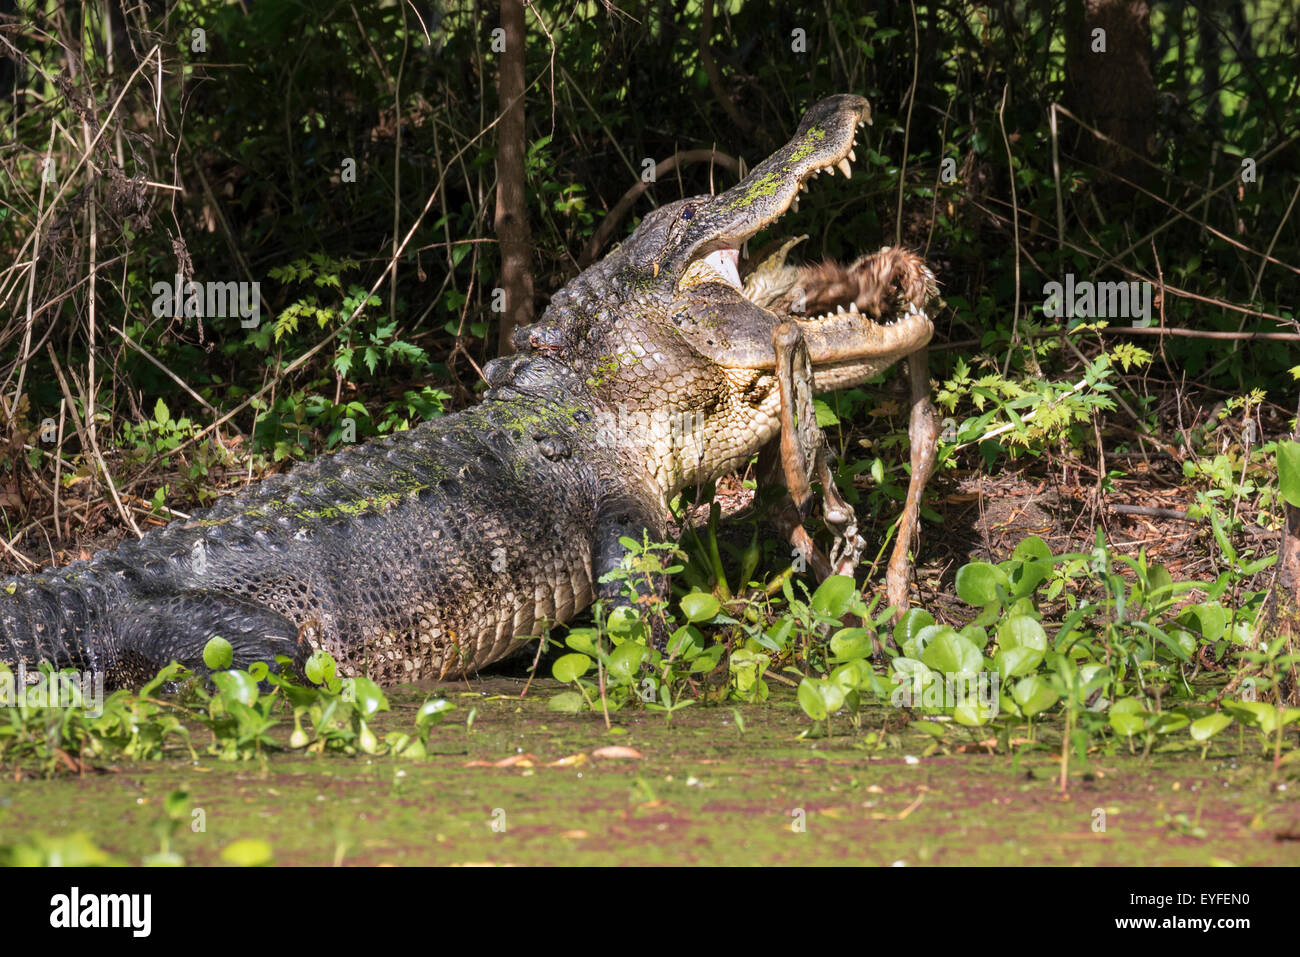 American alligator (Alligator mississippiensis) eating a deer, Brazos Bend state park, Needville, Texas, USA. - Stock Image